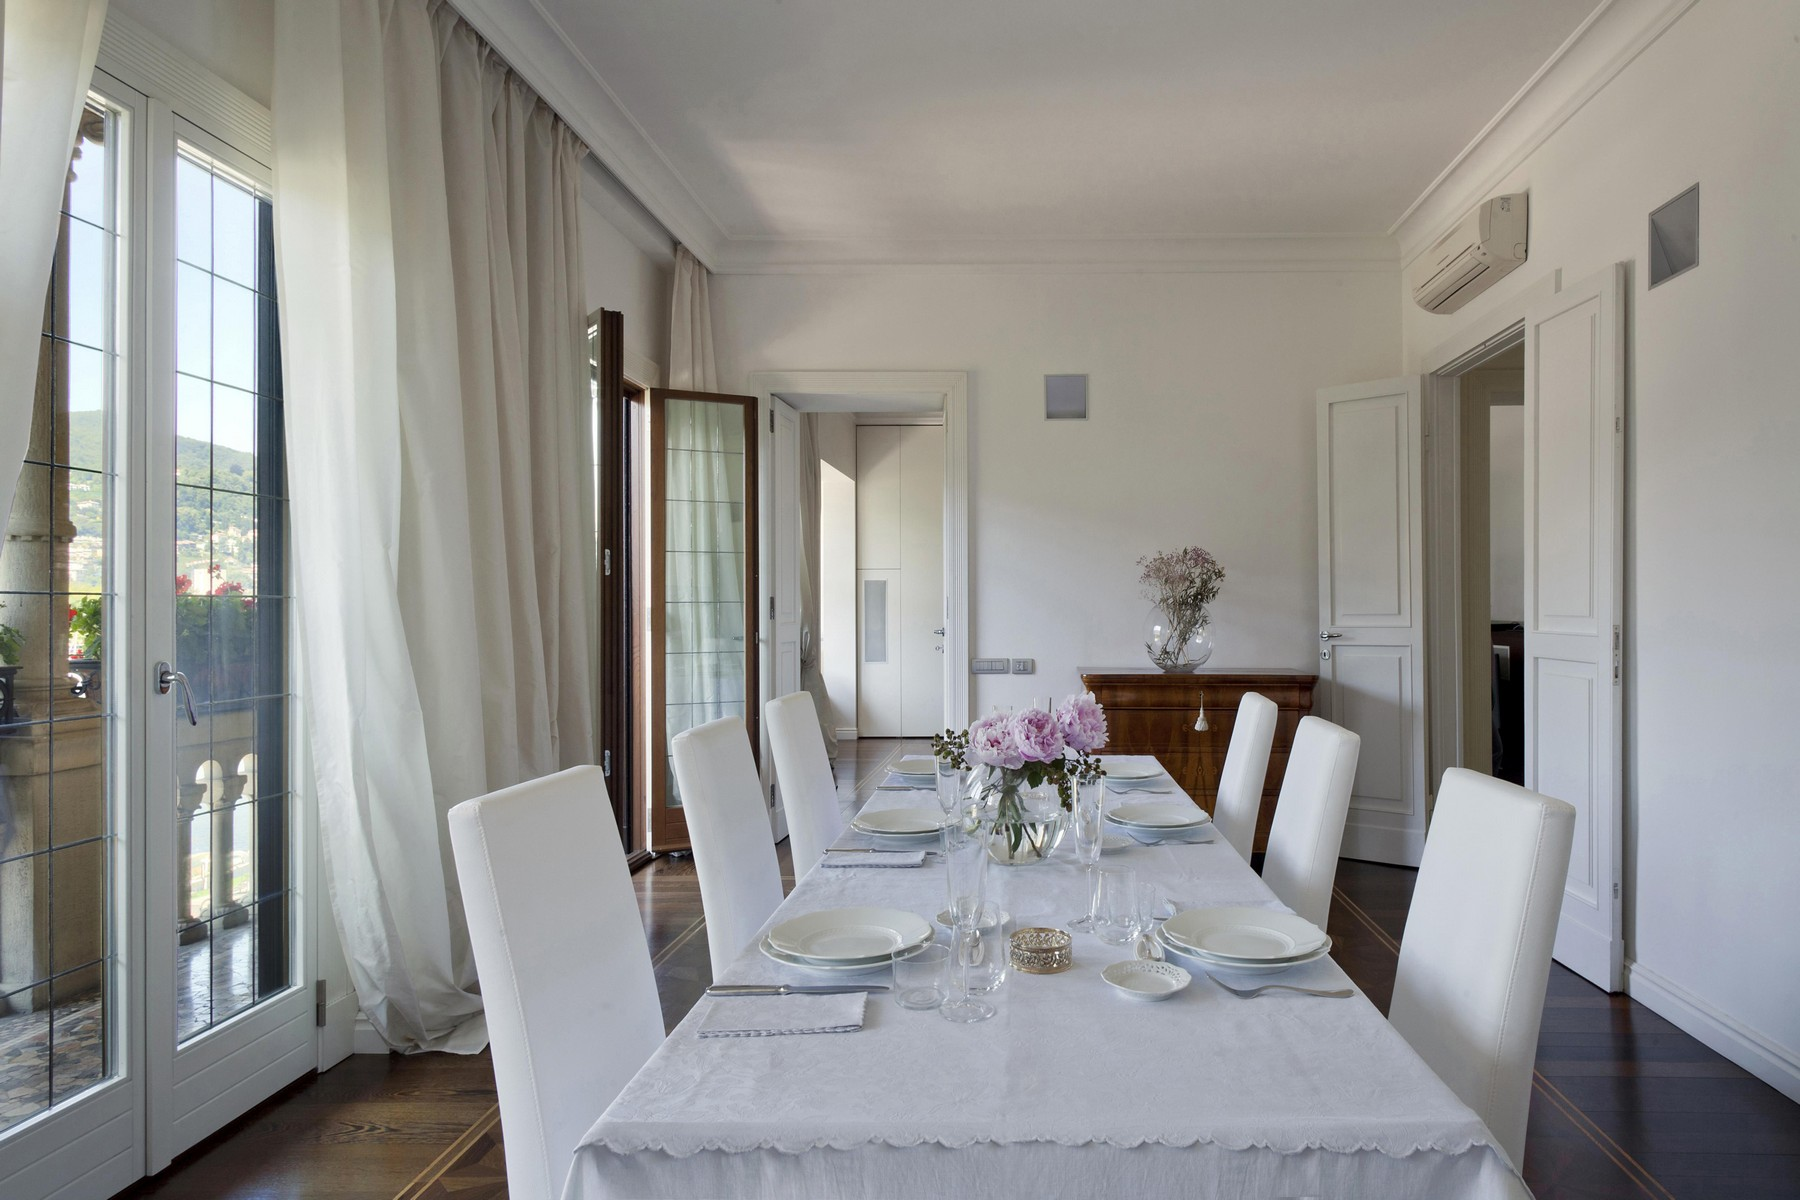 Additional photo for property listing at Prestigious apartment in historic building in Piazza Cavour  Como, Como 22100 Italy